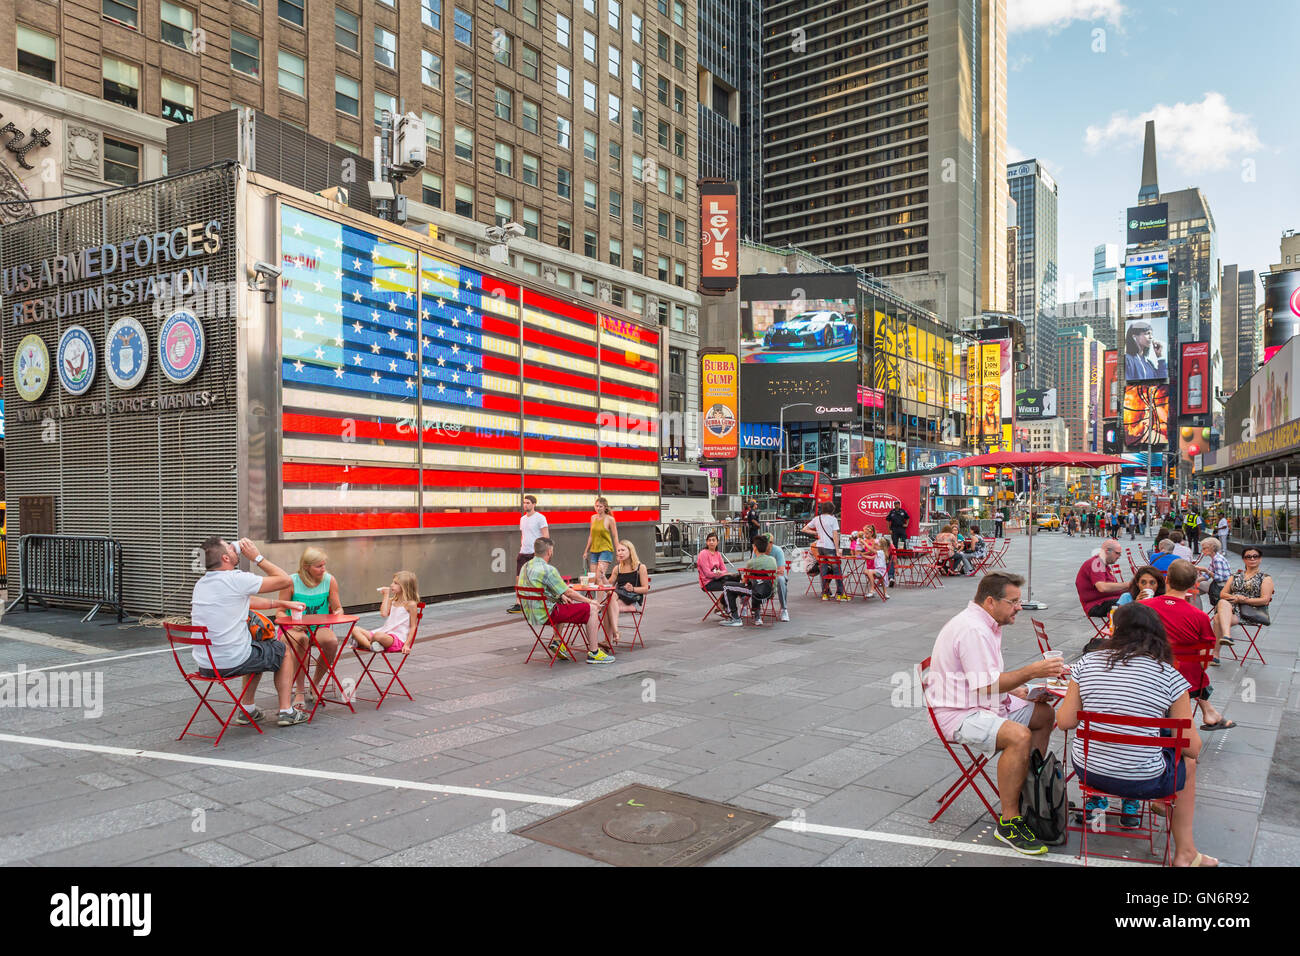 People enjoy the seating in the pedestrian plazas in Times Square  early on a weekend morning in New York City. - Stock Image